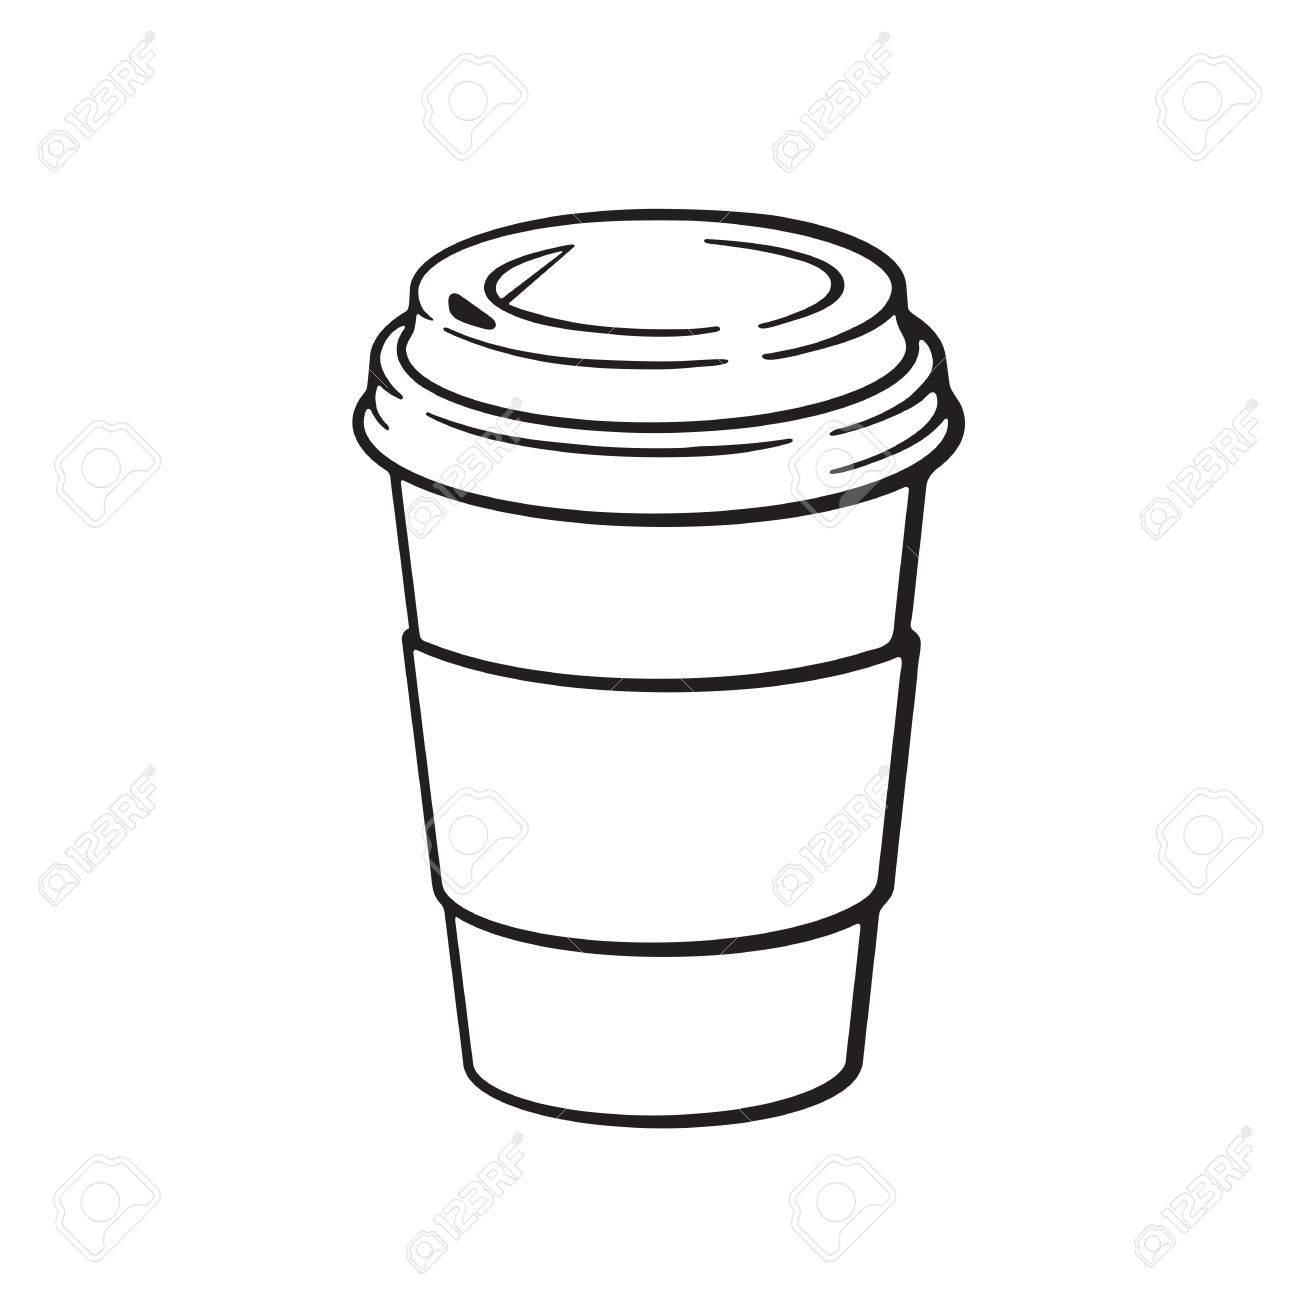 1300x1300 Vector Illustration. Hand Drawn Doodle Of Disposable Paper Cup